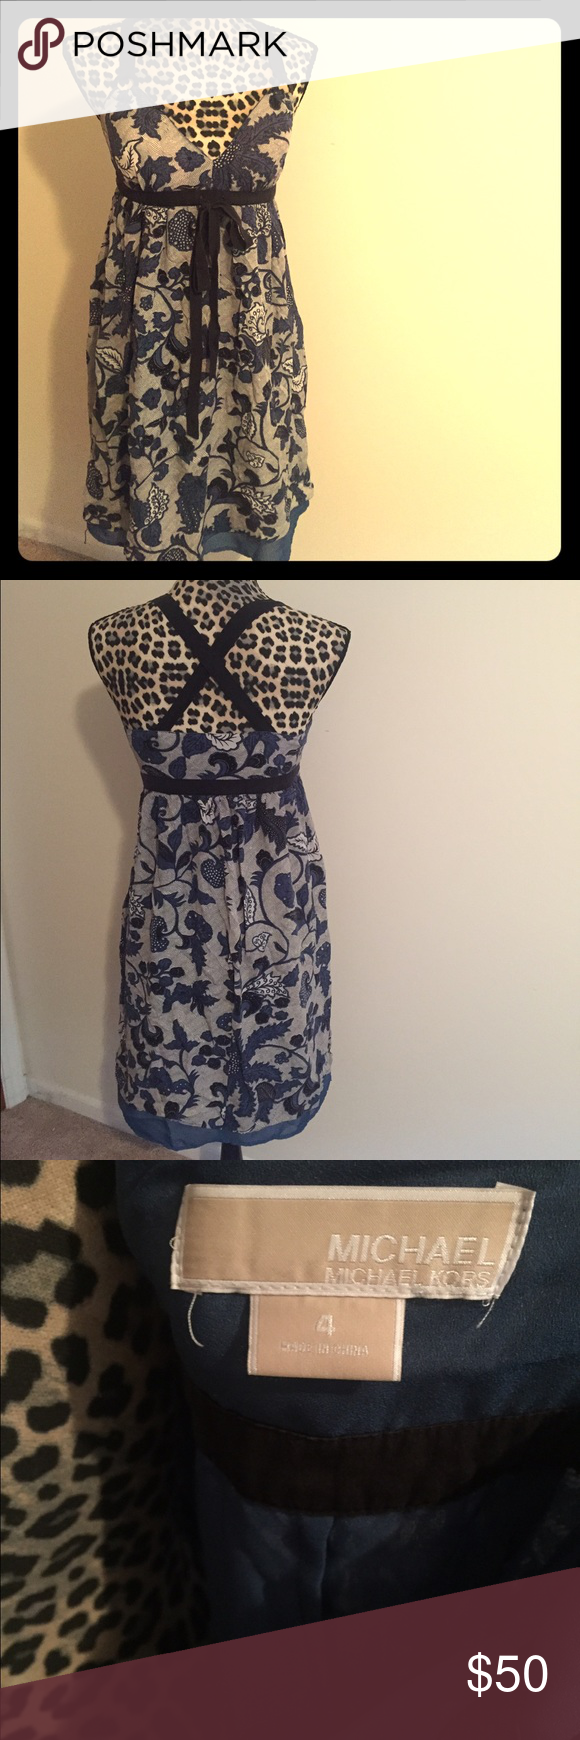 Michael Kors sundress Good condition, cups are padded so no need for a bra! Michael Kors Dresses Midi